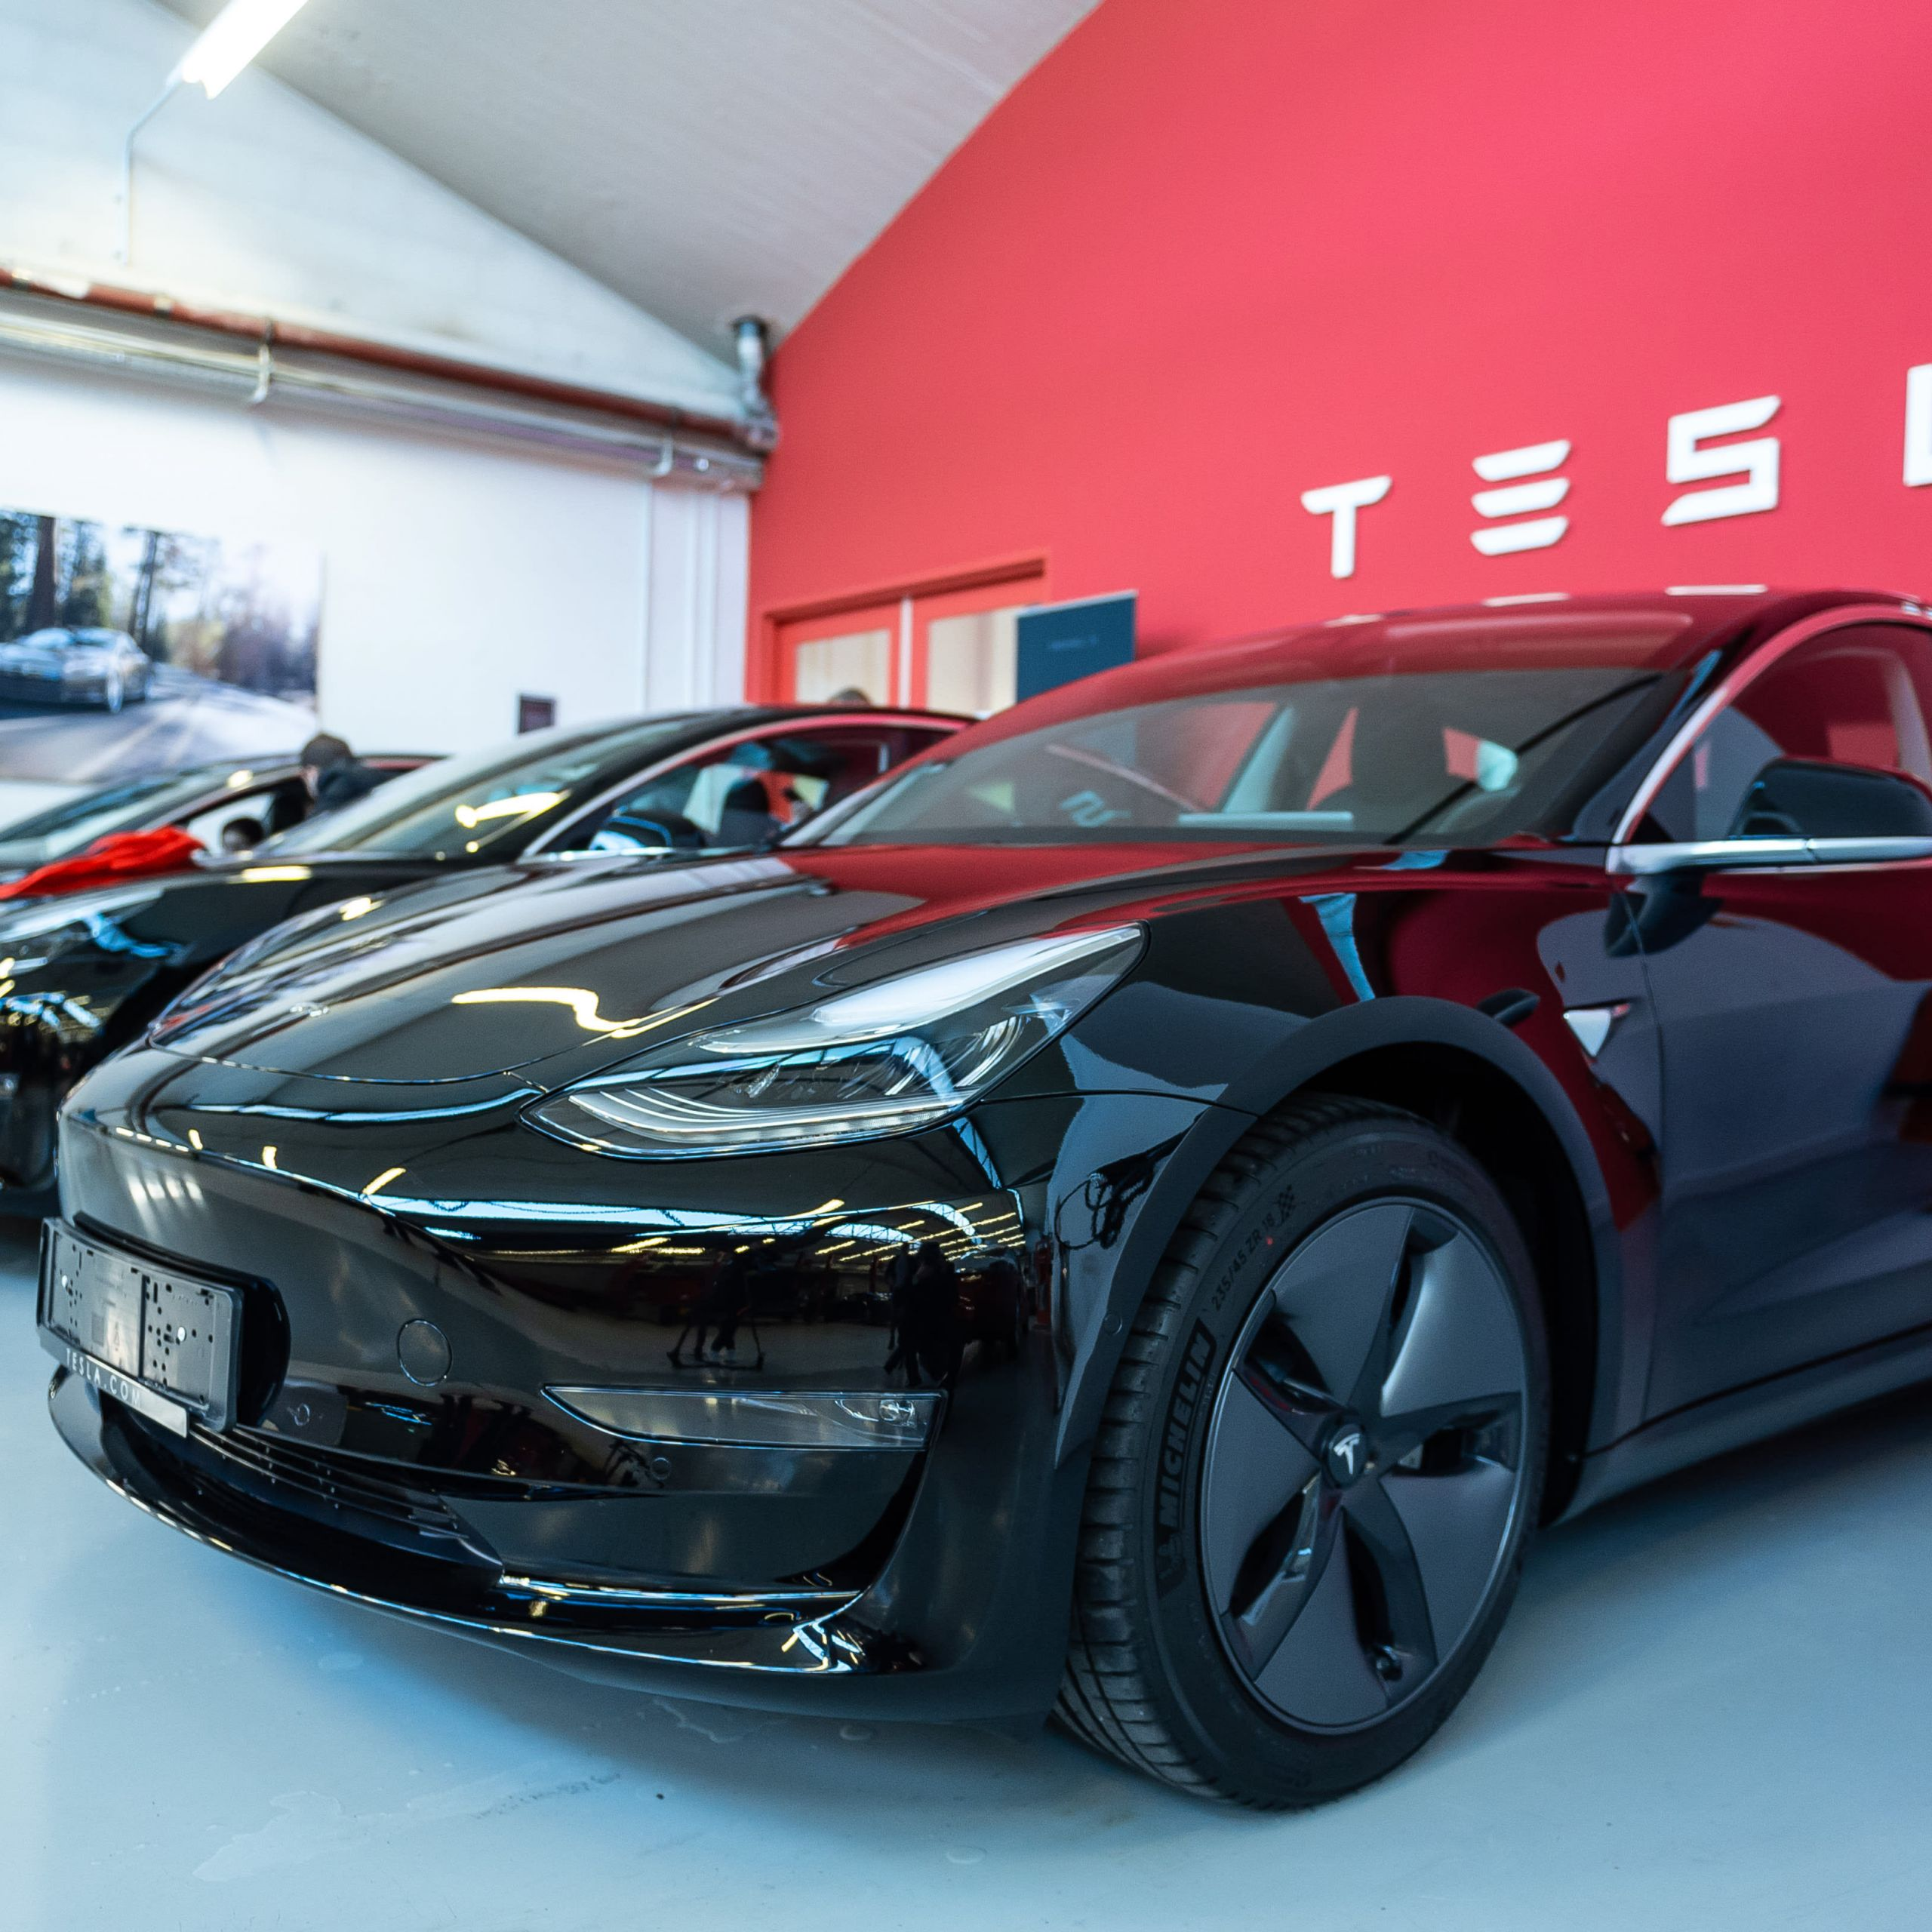 How Much Tesla Model S Luxury Tesla Tsla 3q 2019 Production and Delivery Numbers